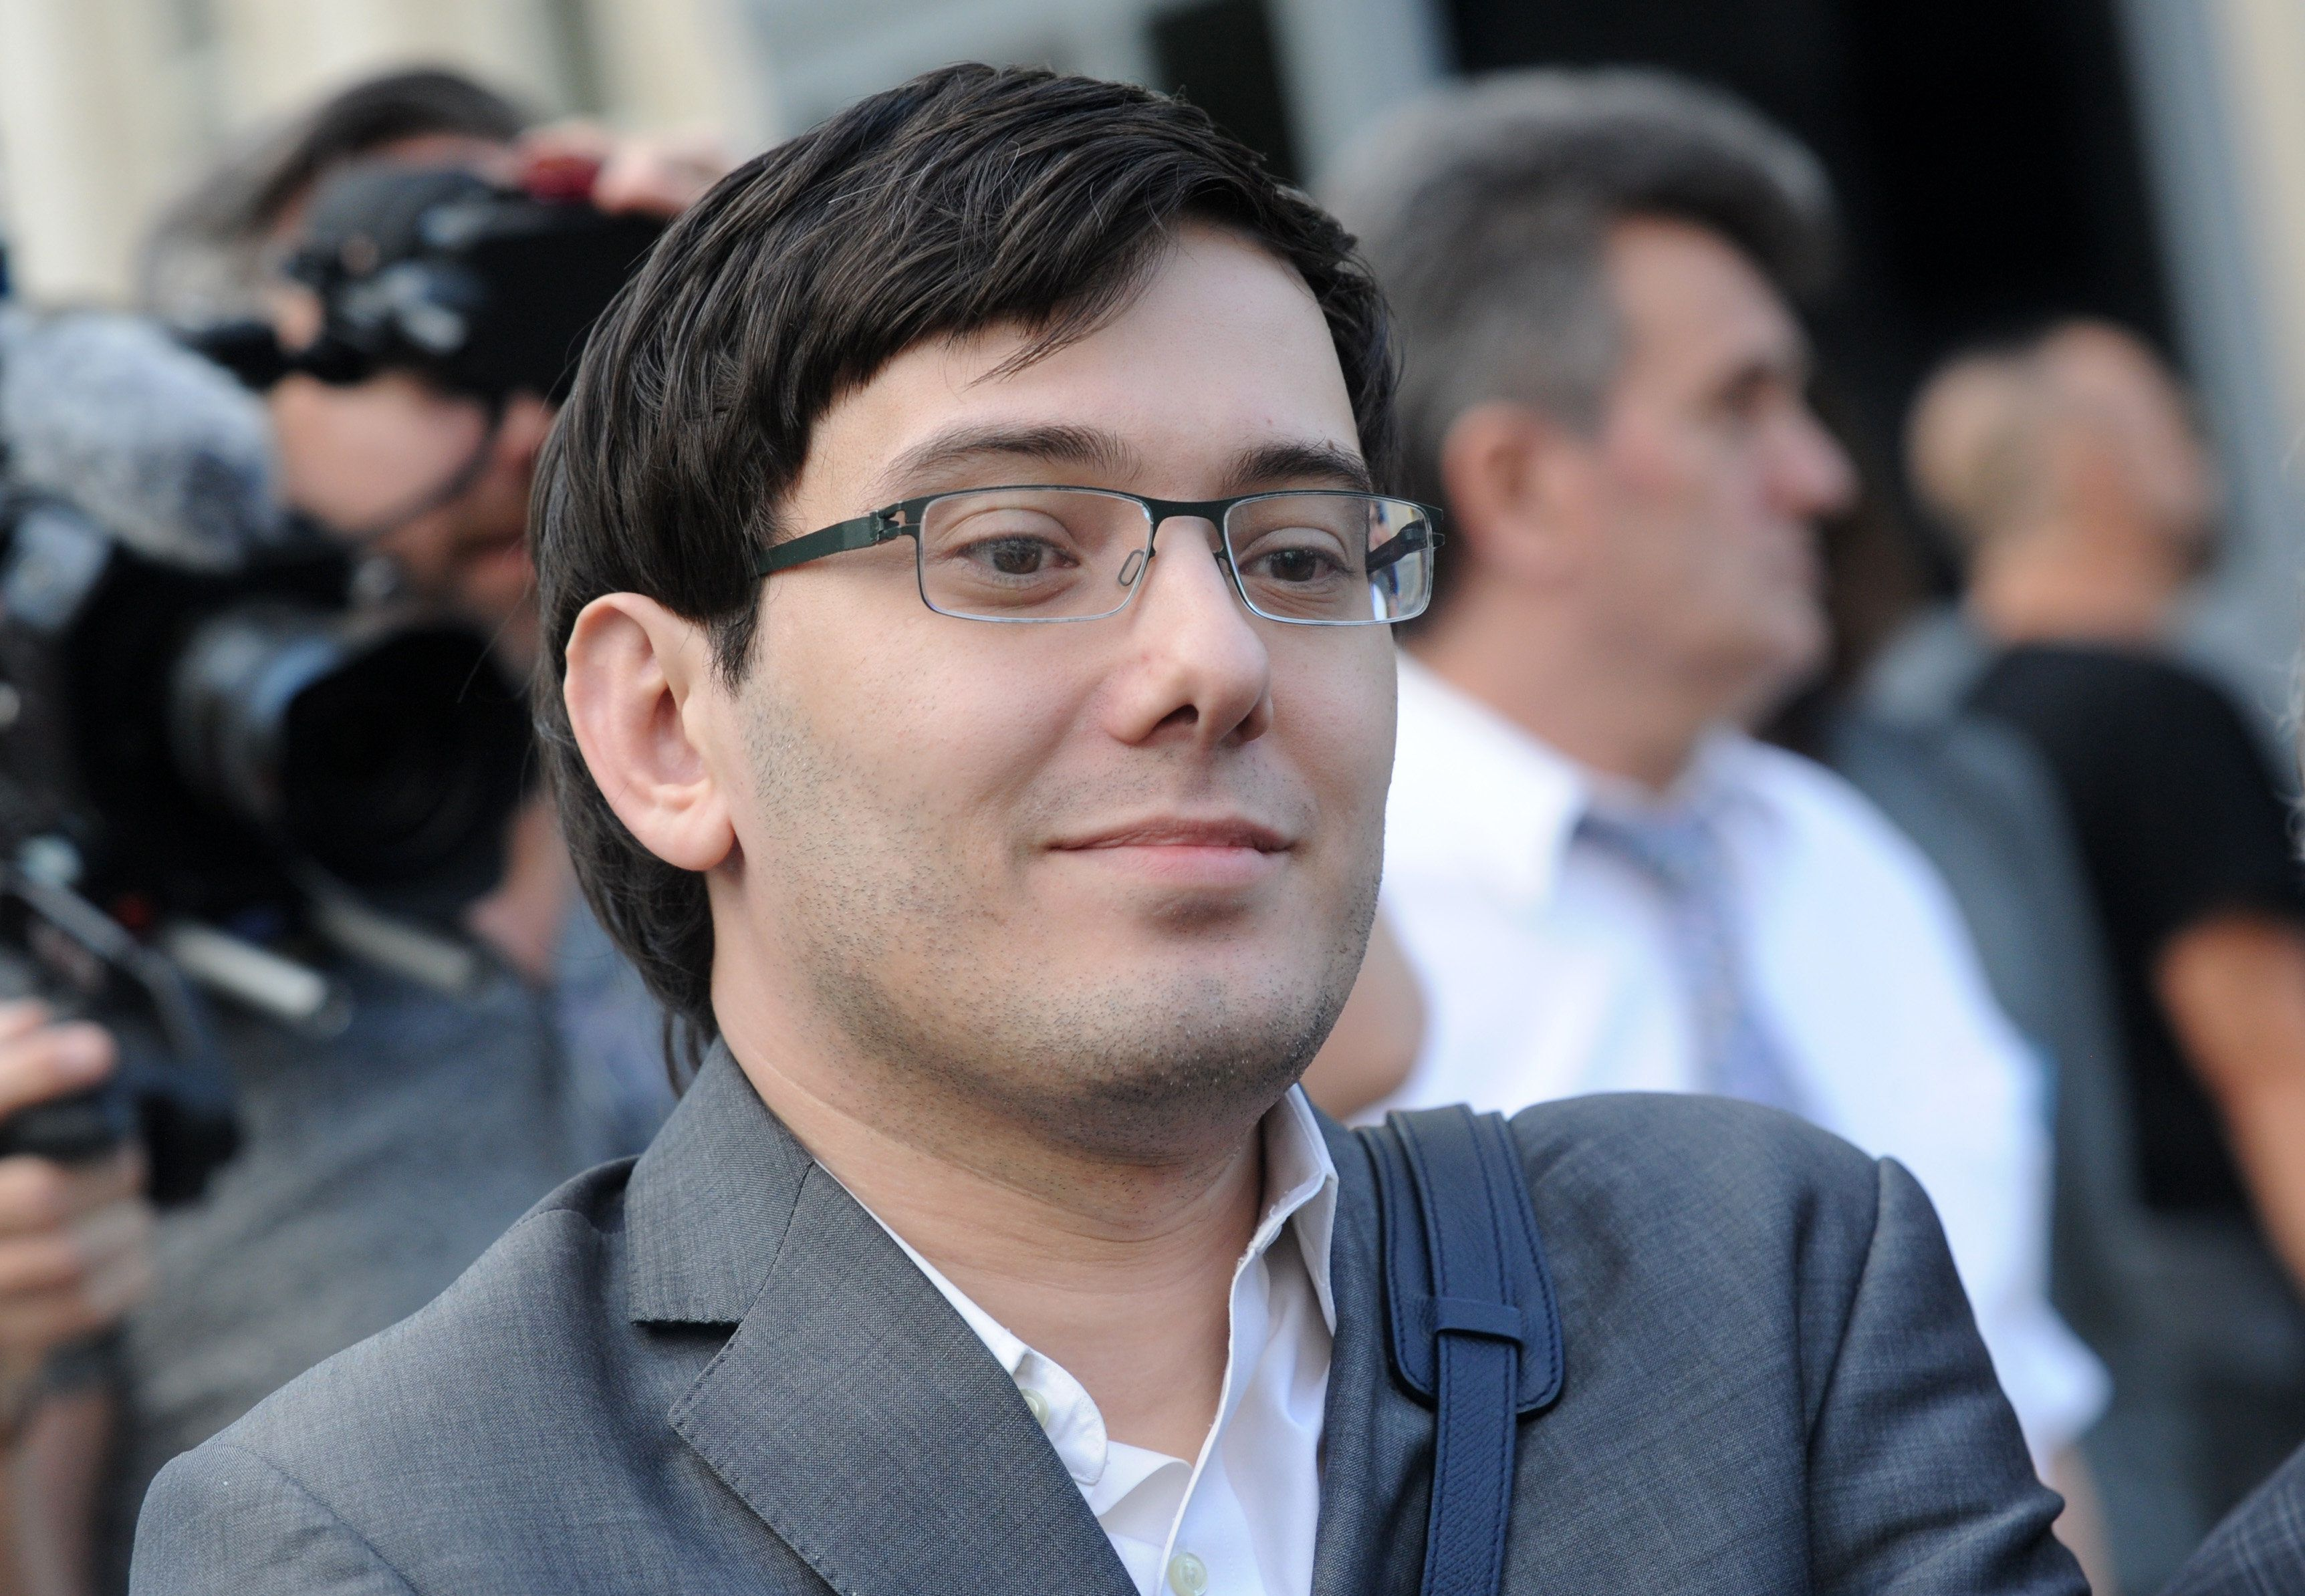 NEW YORK, NY - AUGUST 3: Former Turing Pharmaceuticals CEO Martin Shkreli smiles as he exits the United States Federal courthouse after day four of deliberations in his federal securities fraud trial on August 3, 2017 in New York City. Credit: Dennis Van Tine/MediaPunch/IPX